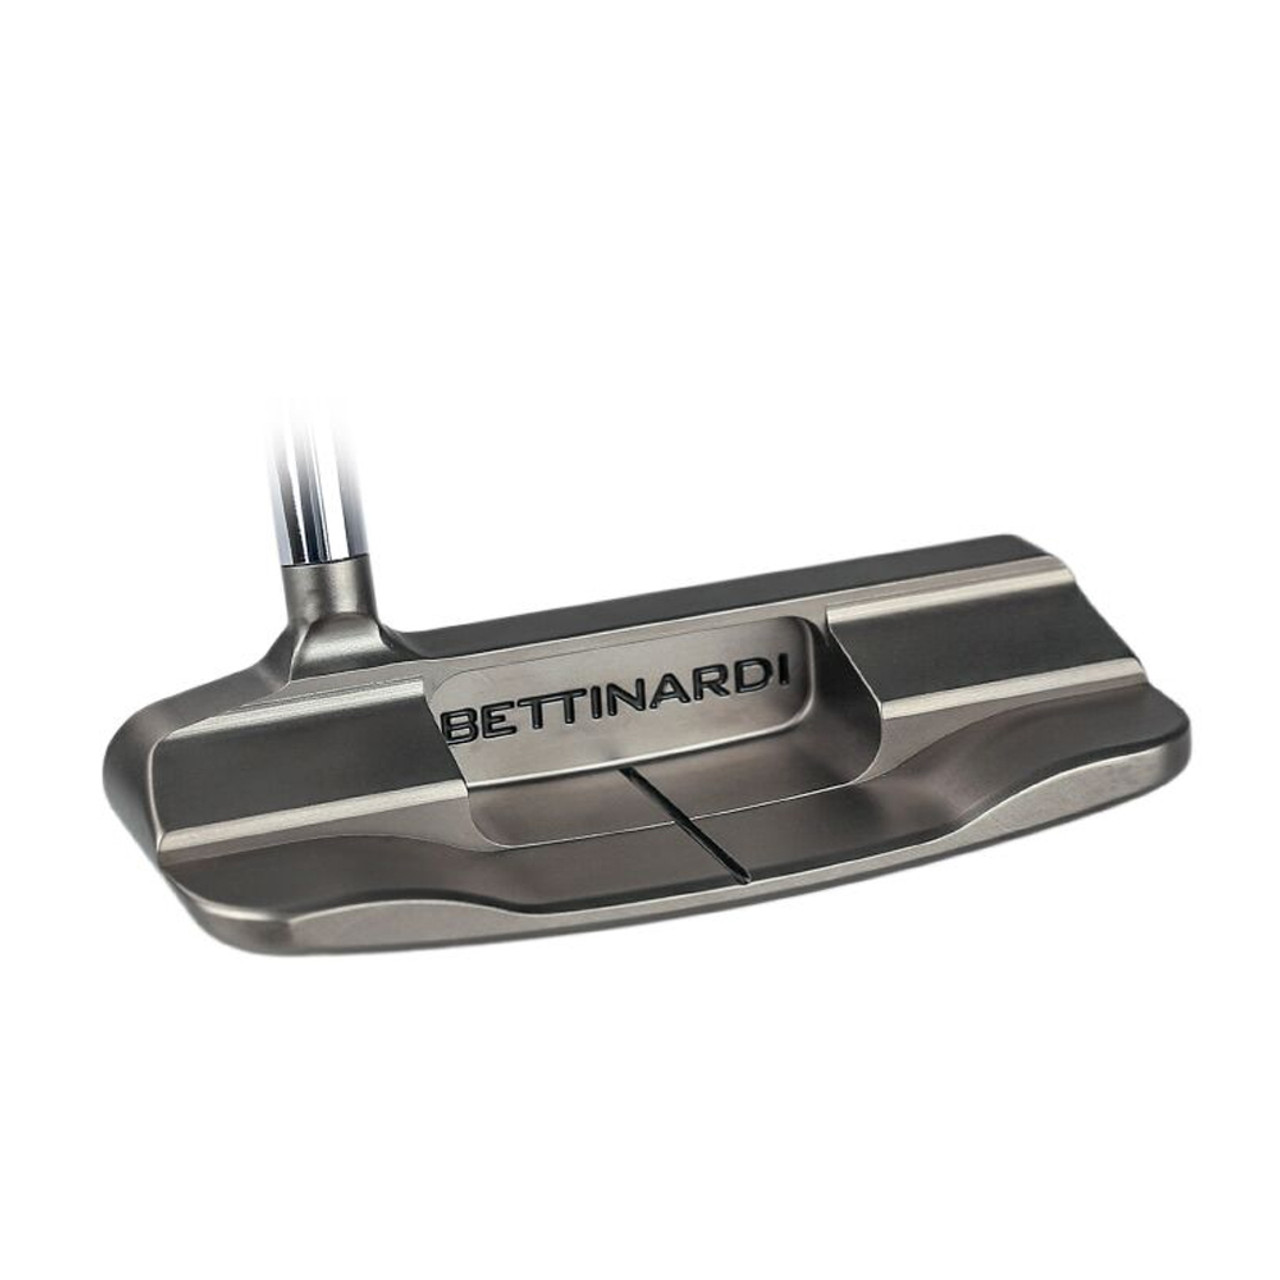 Bettinardi Studio Stock SS28 Putter